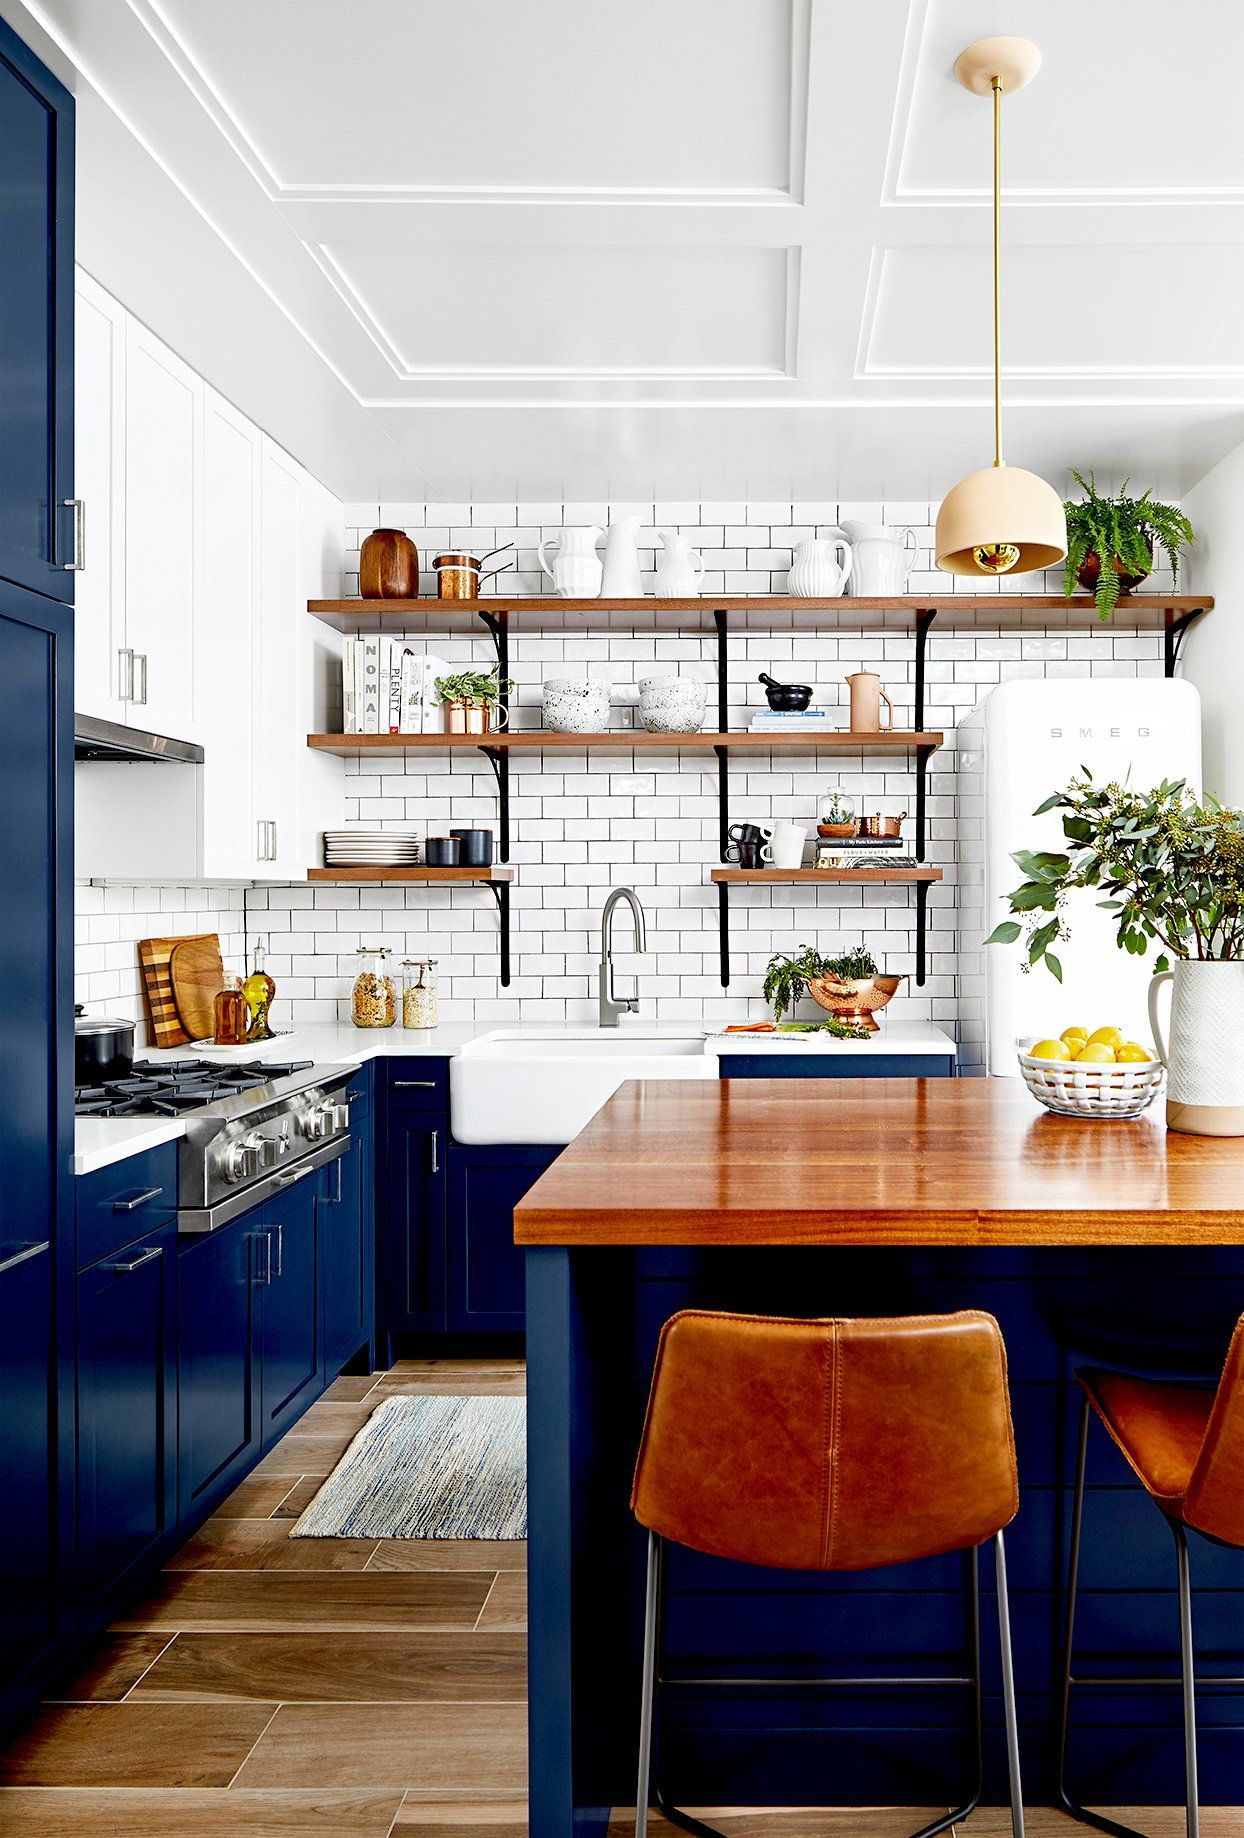 7 ways to decorate every room with pantones 2020 color of